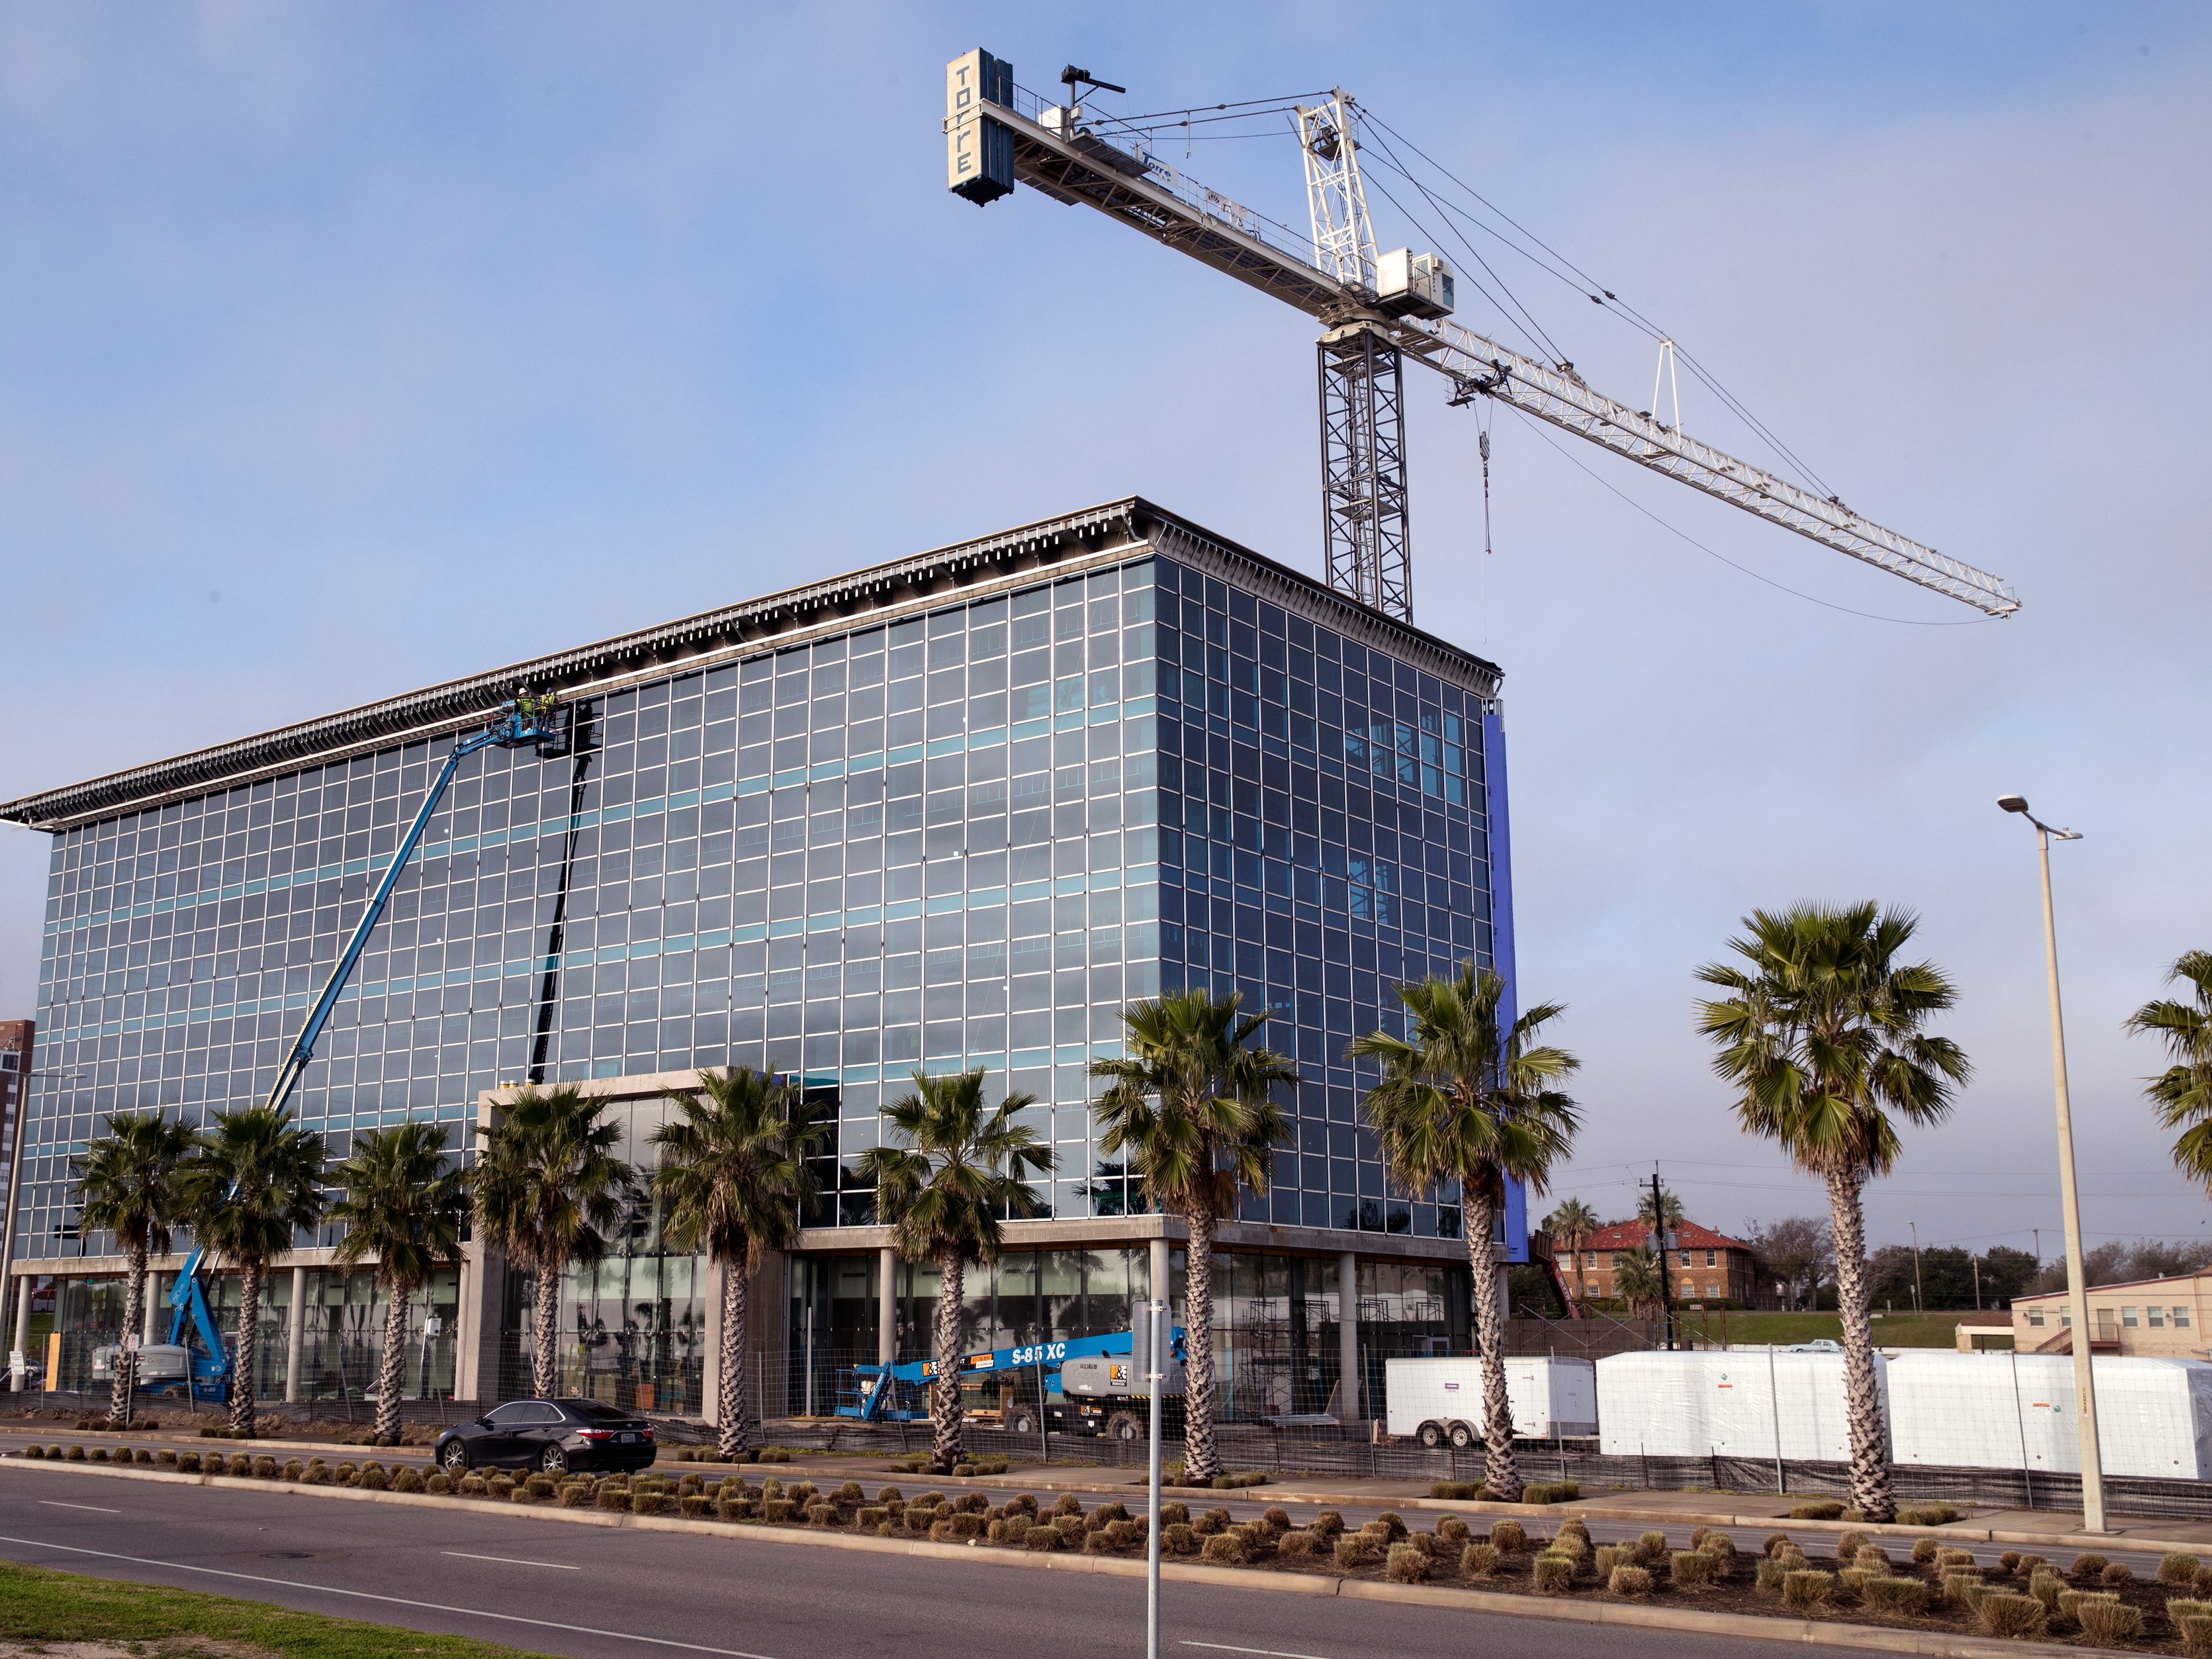 Work continues on the new Corpus Christi headquarters for Frost Bank on Thursday, January 31, 2019.